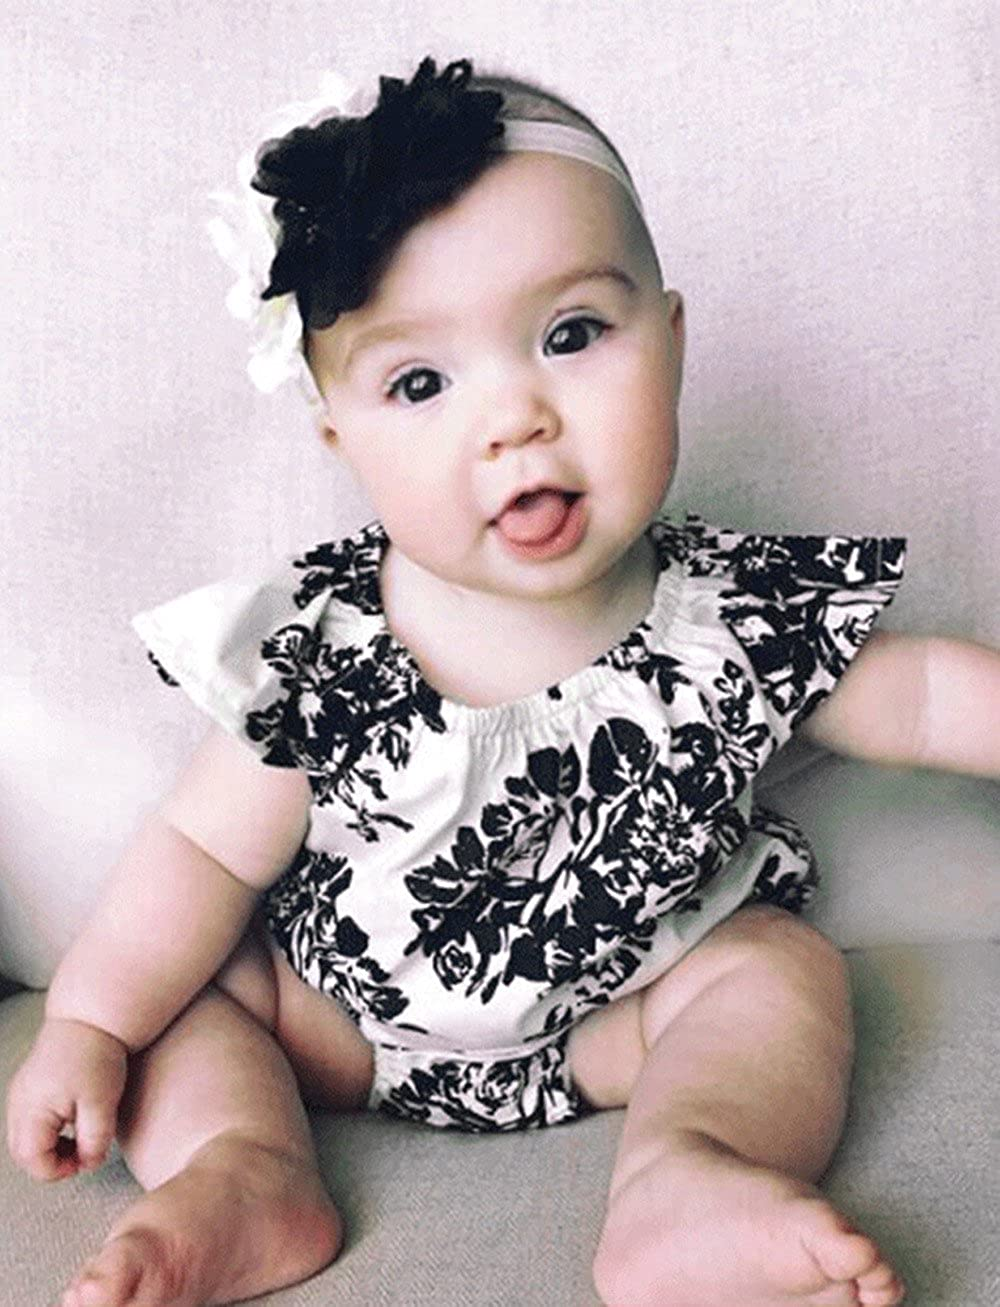 eaa2c9104d24 Amazon.com: Toddler Infant Romper Jumpsuit Summer Newborn Baby Girls  Ruffles Floral Romper Jumpsuit Playsuit Outfit Clothes: Clothing